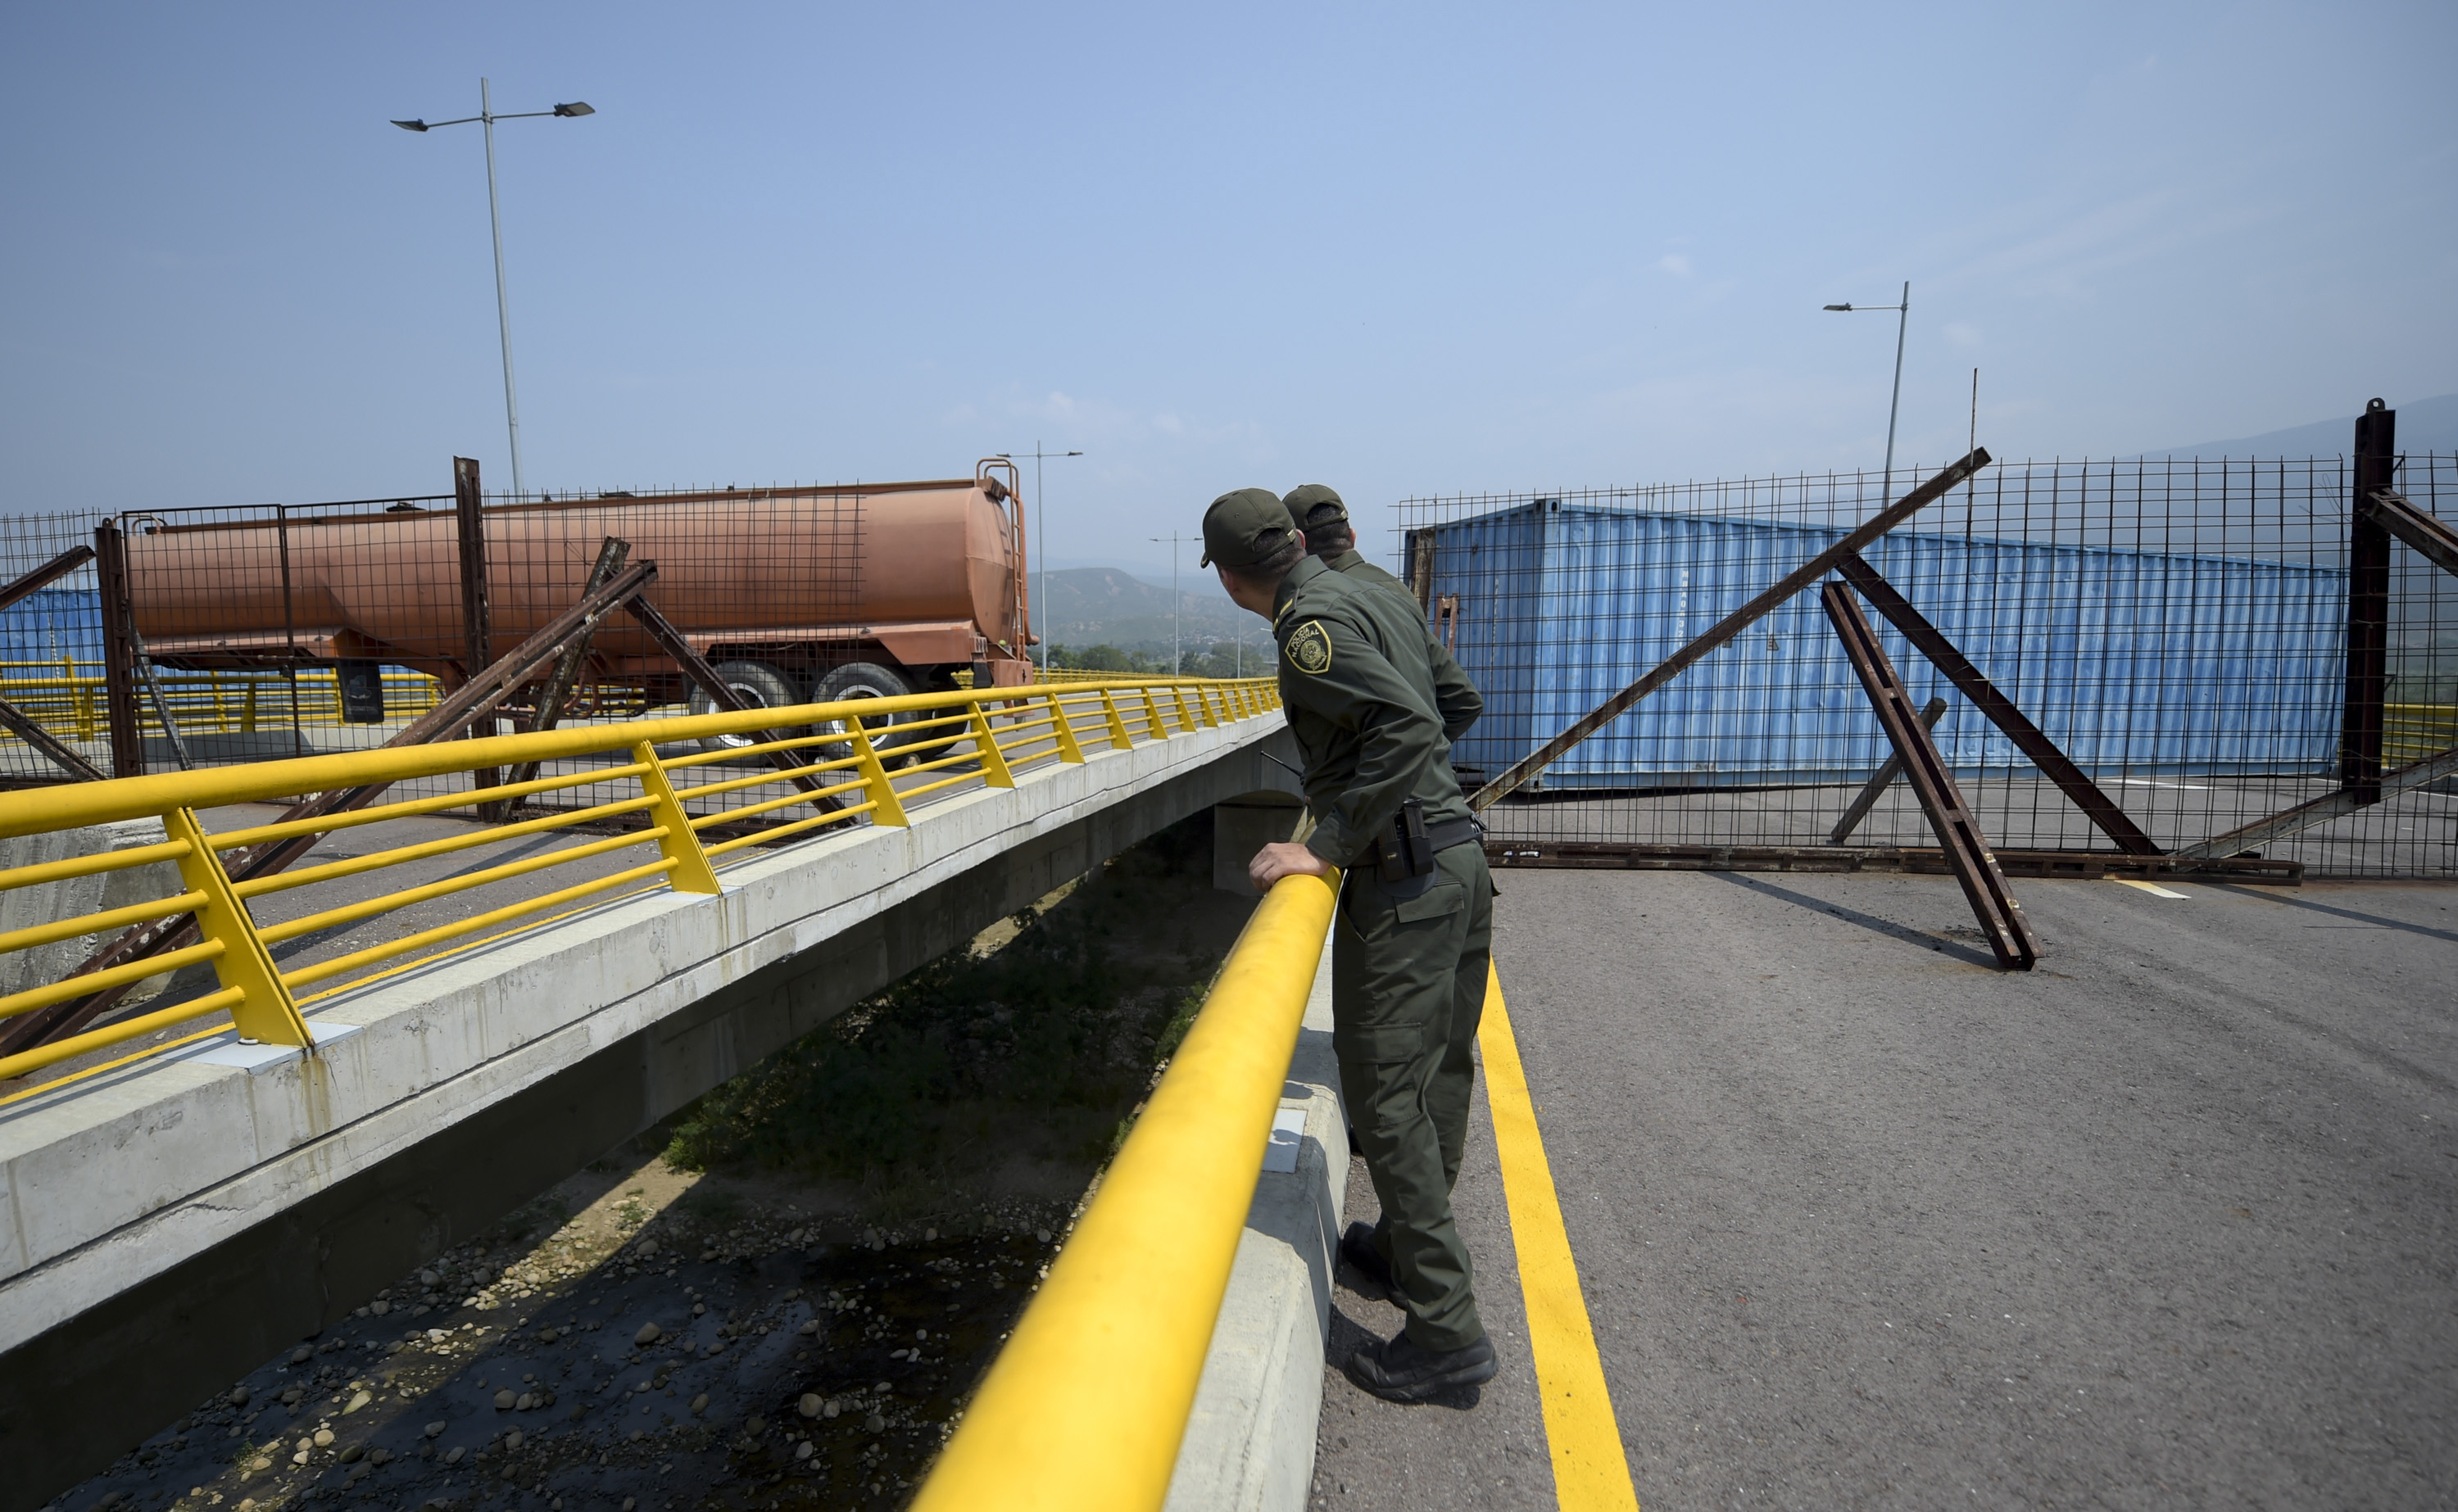 Colombian policemen look at the Tienditas Bridge, which links Tachira, Venezuela, and Cucuta, Colombia, after it was blocked with containers by Velezuelan forces, on February 6, 2019. (RAUL ARBOLEDA/AFP/Getty Images)